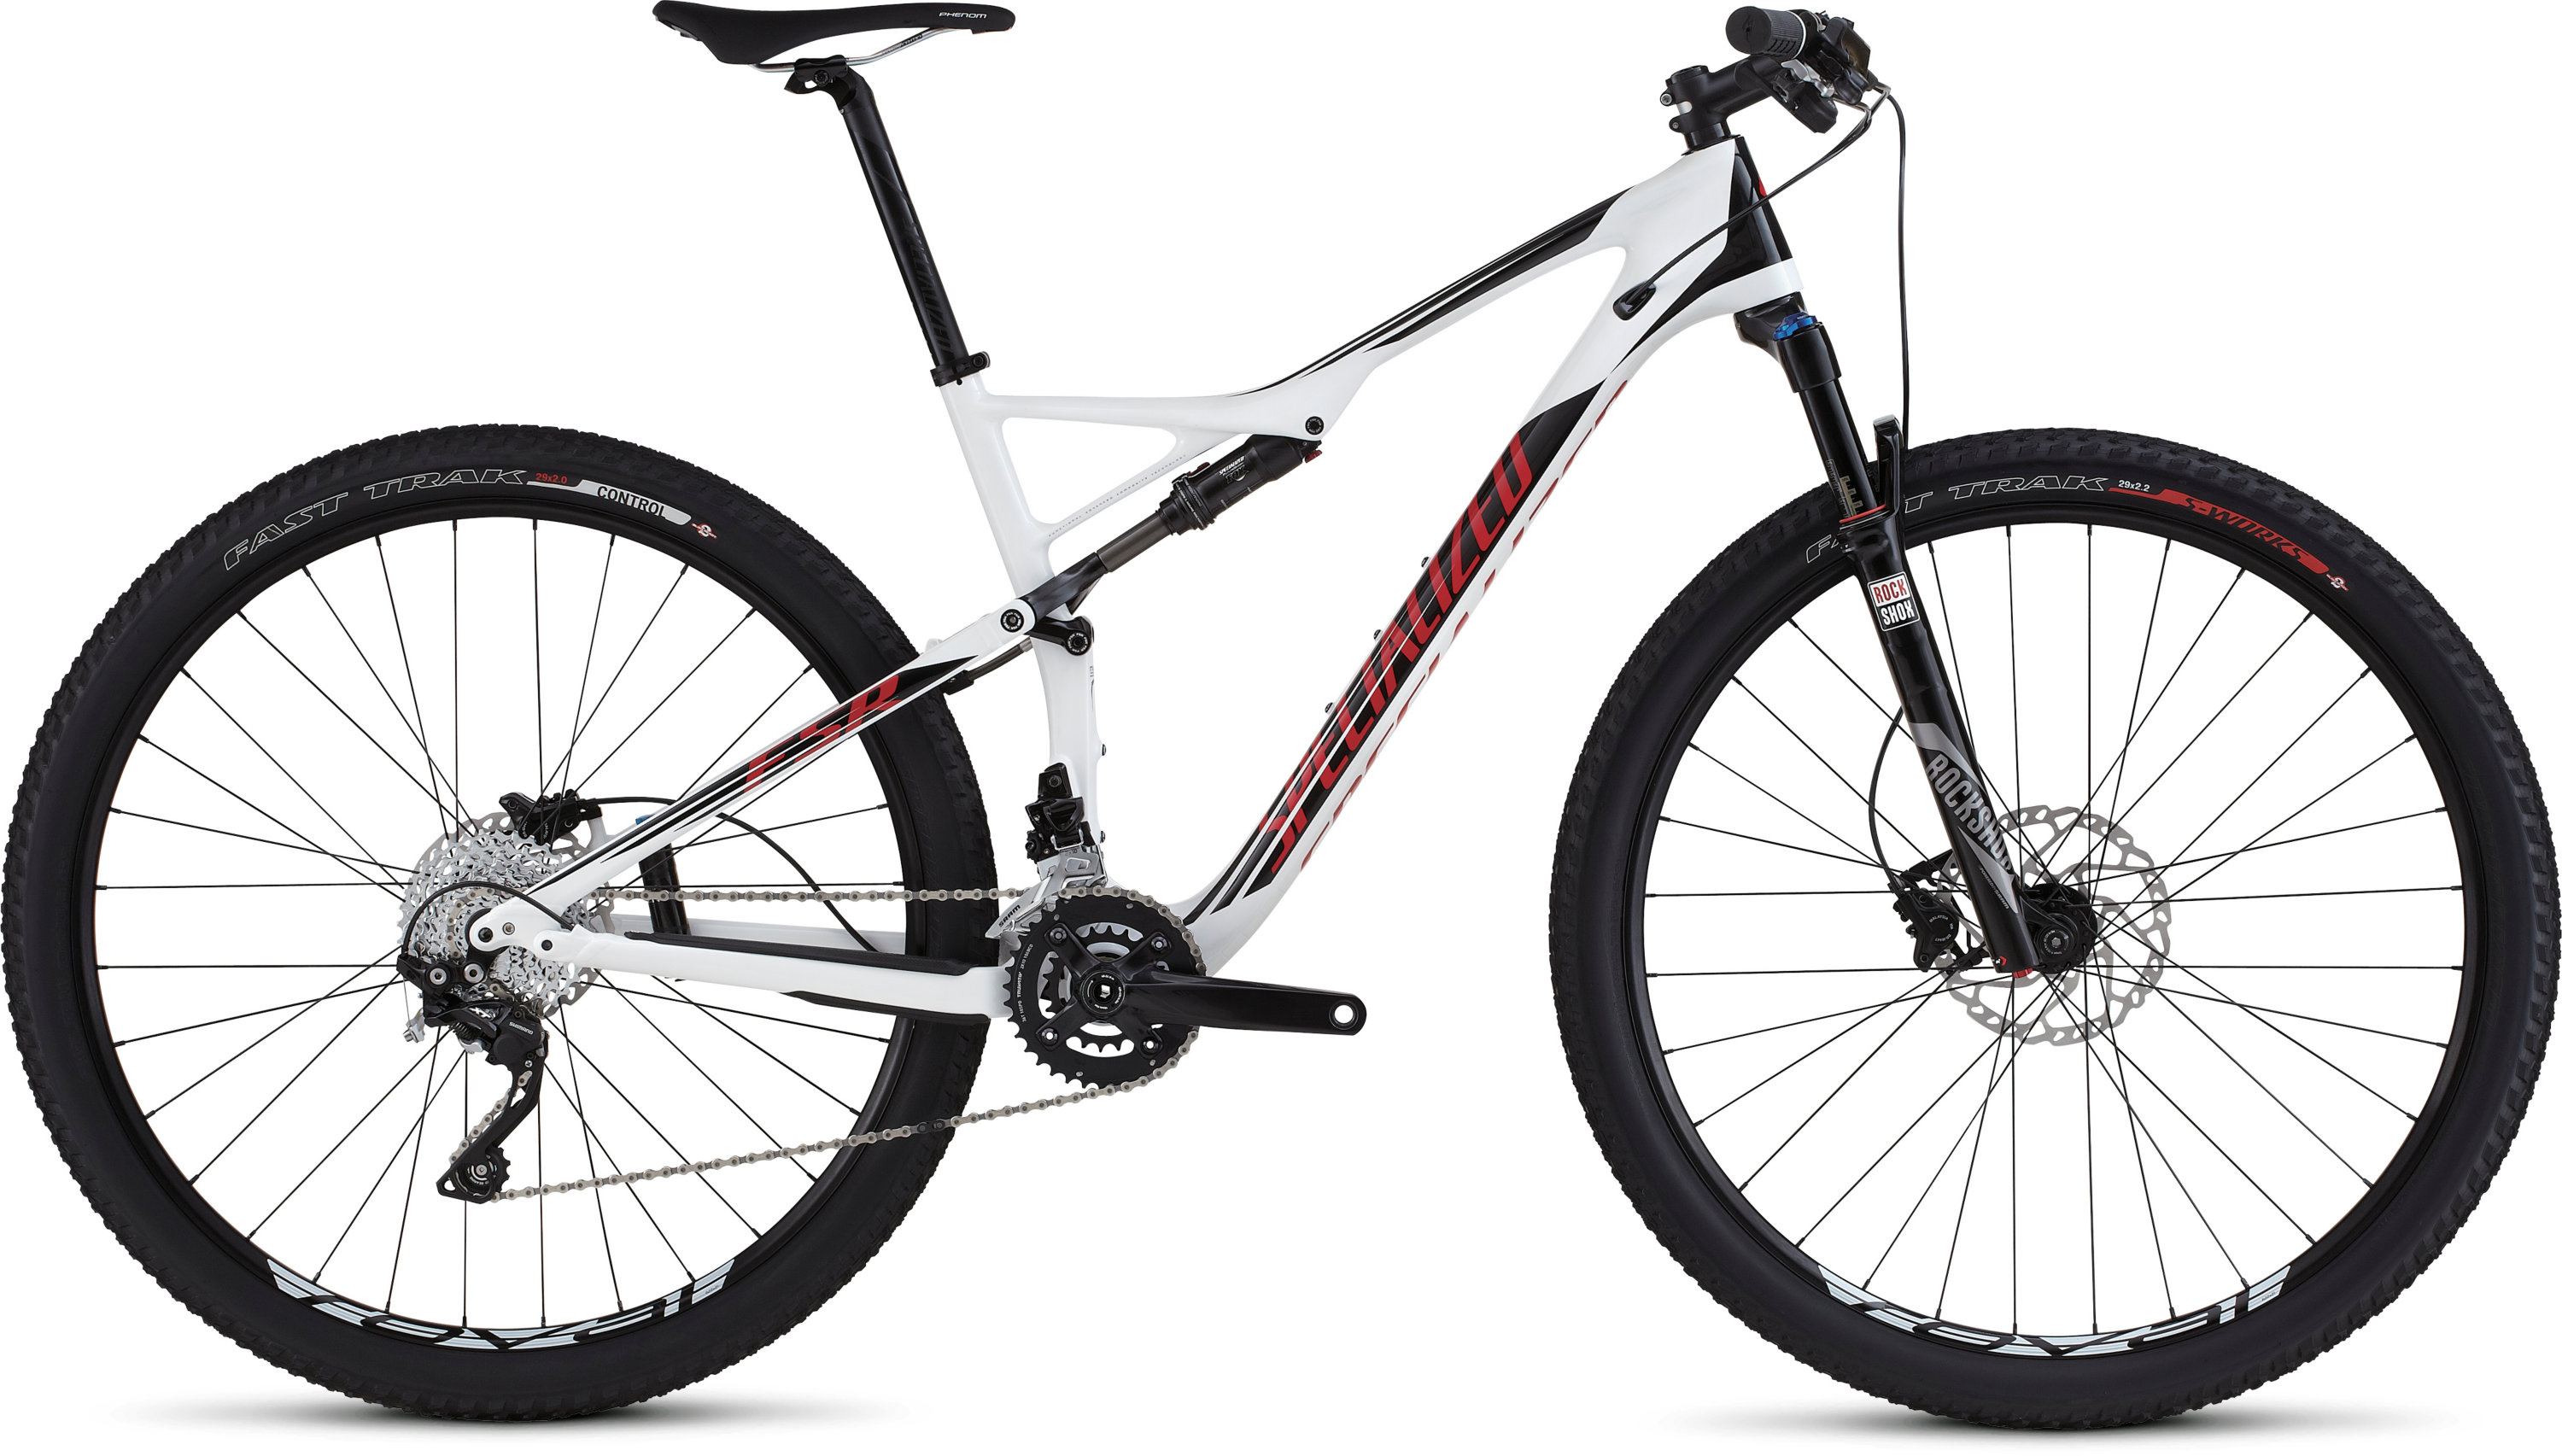 SPECIALIZED EPIC FSR COMP CARBON 29 WHT/BLK/RED S - SPECIALIZED EPIC FSR COMP CARBON 29 WHT/BLK/RED S